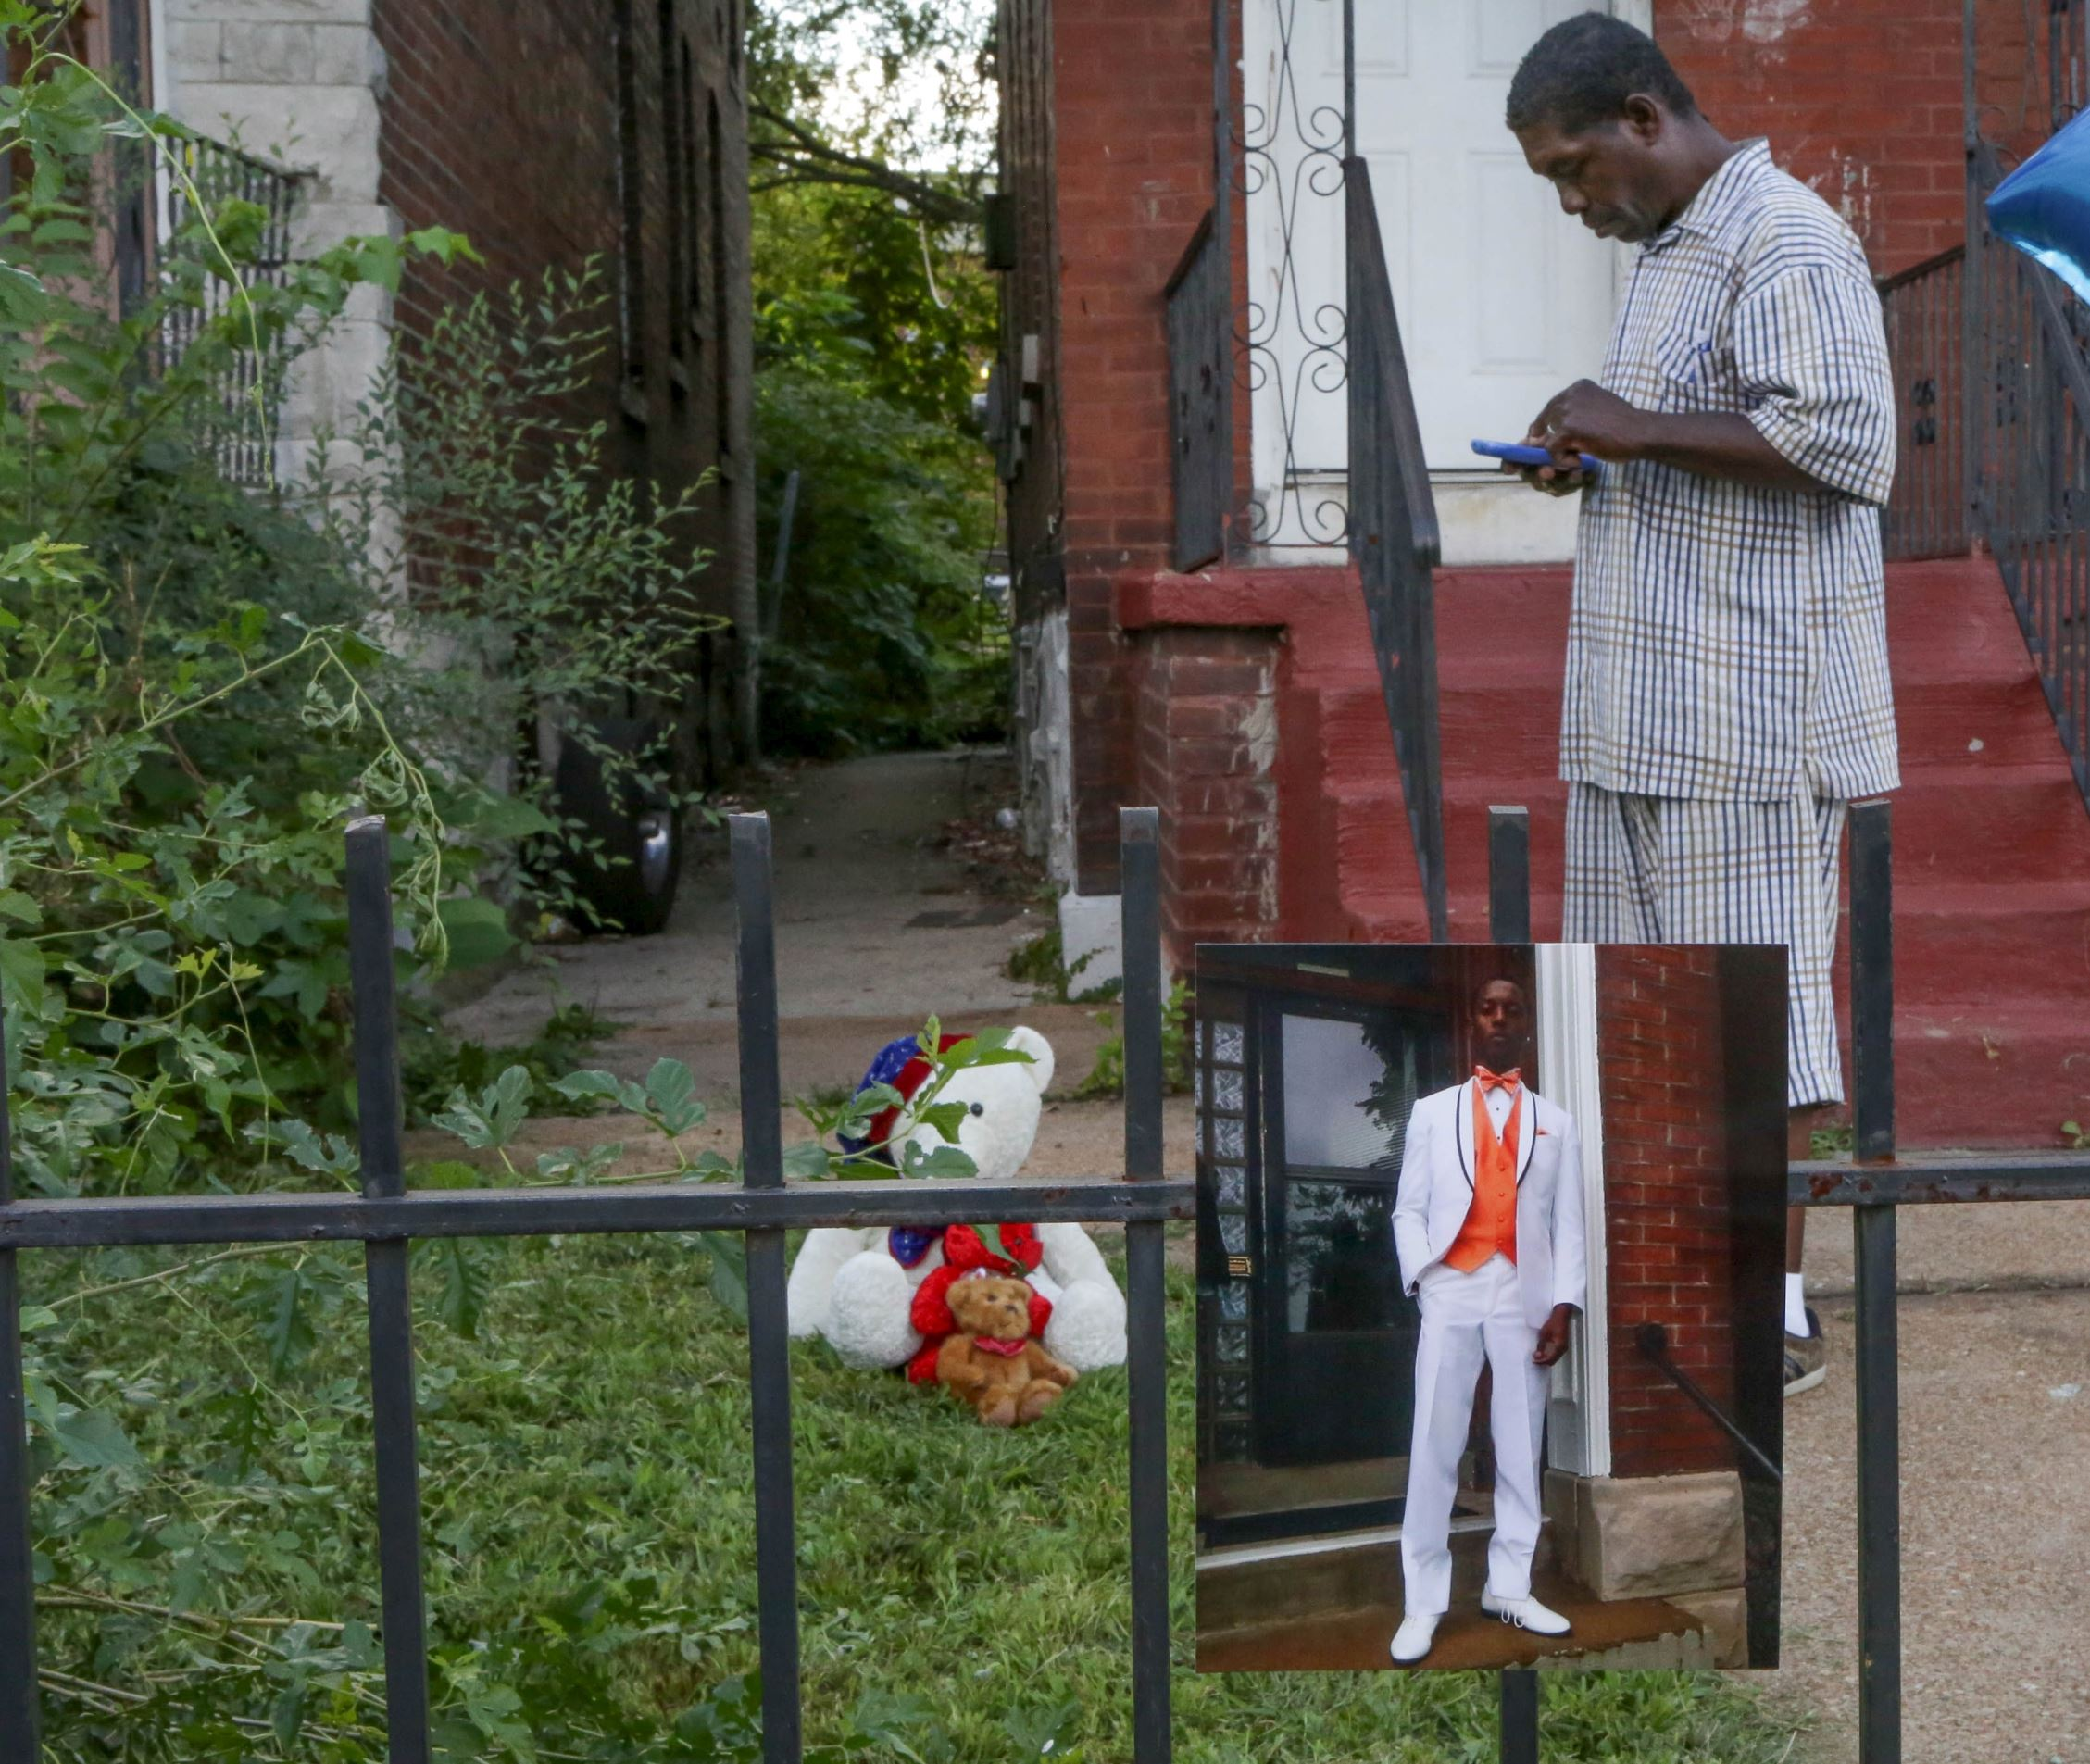 Dennis Ball-Bey, the father of Mansur Ball-Bey, stands in front of the steps where police shot his son as a photo of Mansur hangs on the fence in St. Louis, Missouri, United States, August 20, 2015. The St. Louis police on Wednesday fatally shot Mansur Ball-Bey, a black teenager who they say pointed a gun at them, and later faced angry crowds, reigniting racial tensions first sparked by the killing of an unarmed black teen in another Missouri town a year ago. St. Louis Police Chief Sam Dotson said the shooting took place when young black men ran out of the back door of a house where officers were carrying out a search warrant. Officers ordered the pair to stop in an alley behind the house. One suspect pointed a gun at officers who then fired four times, killing him, Dotson said.